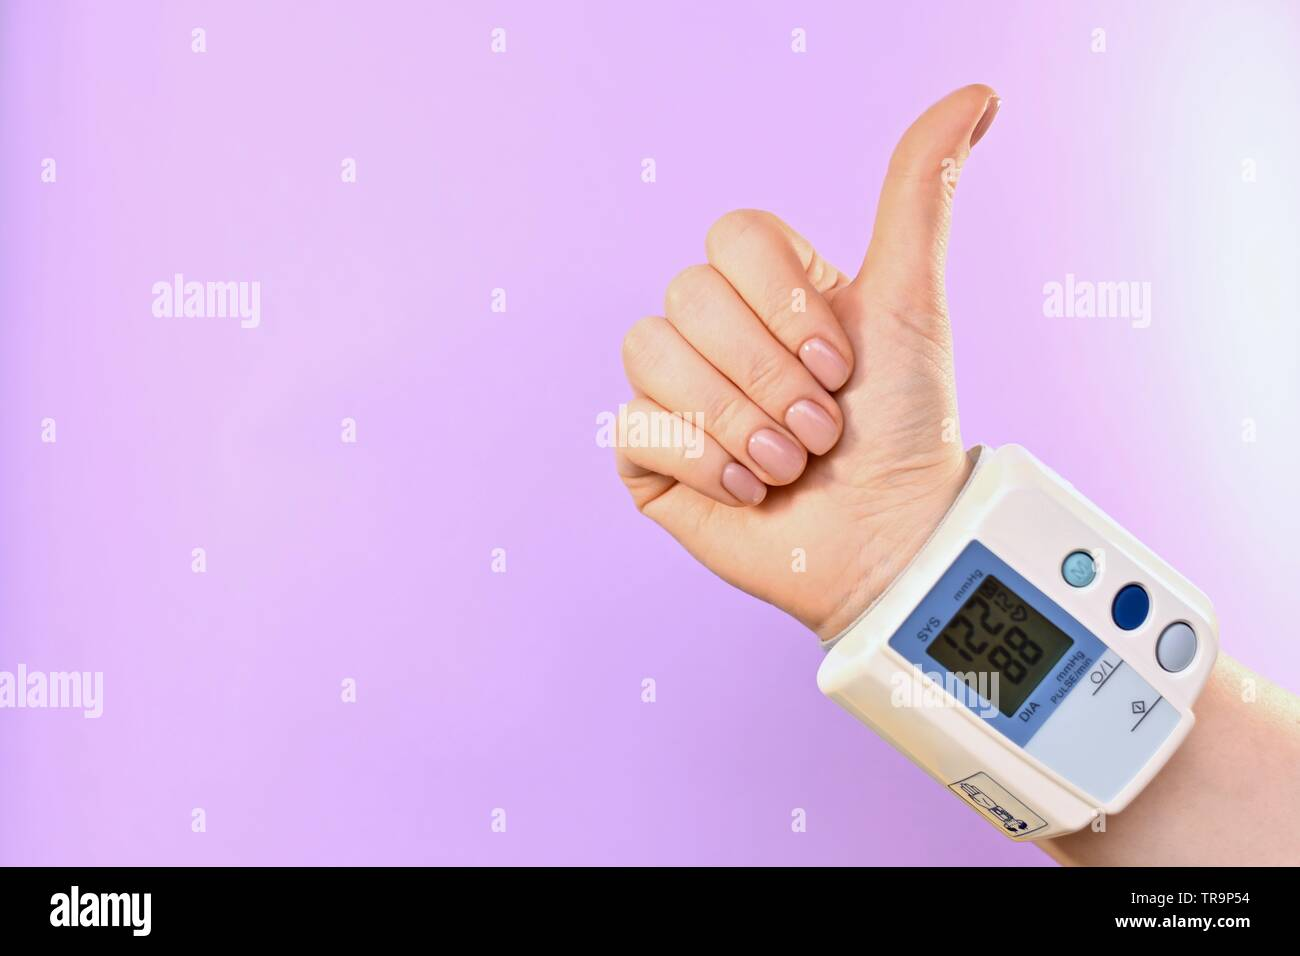 Hand and tonometer, buttoned at the wrist. Diagonally in the center, from the lower right corner. On a purple background. On the scoreboard indicators - Stock Image